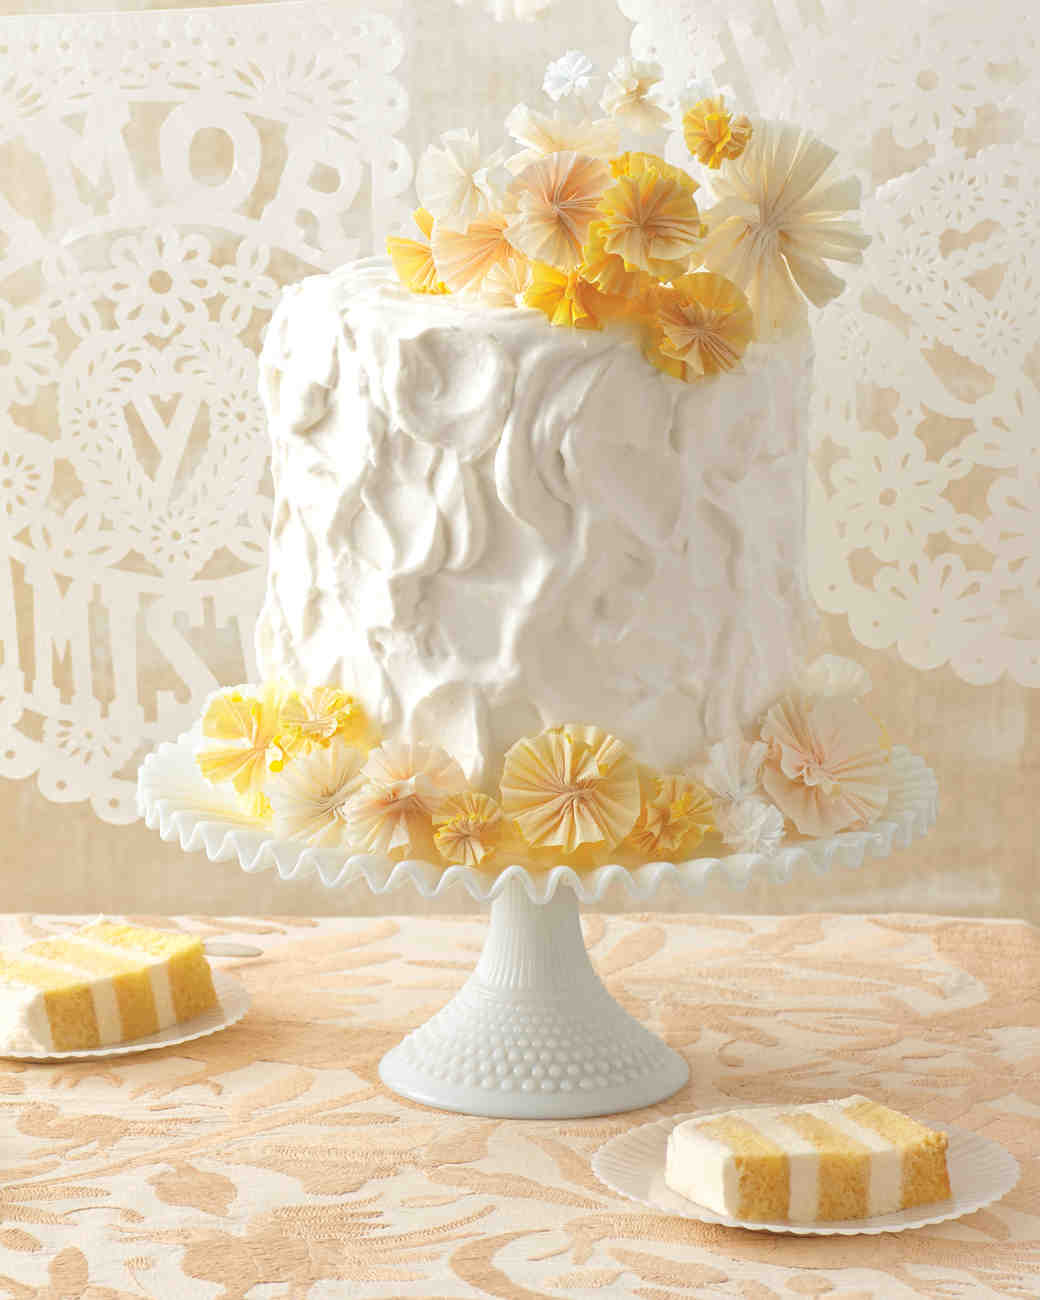 mexican wedding cakes martha stewart worldly batters 5 wedding cakes from around the globe 17317